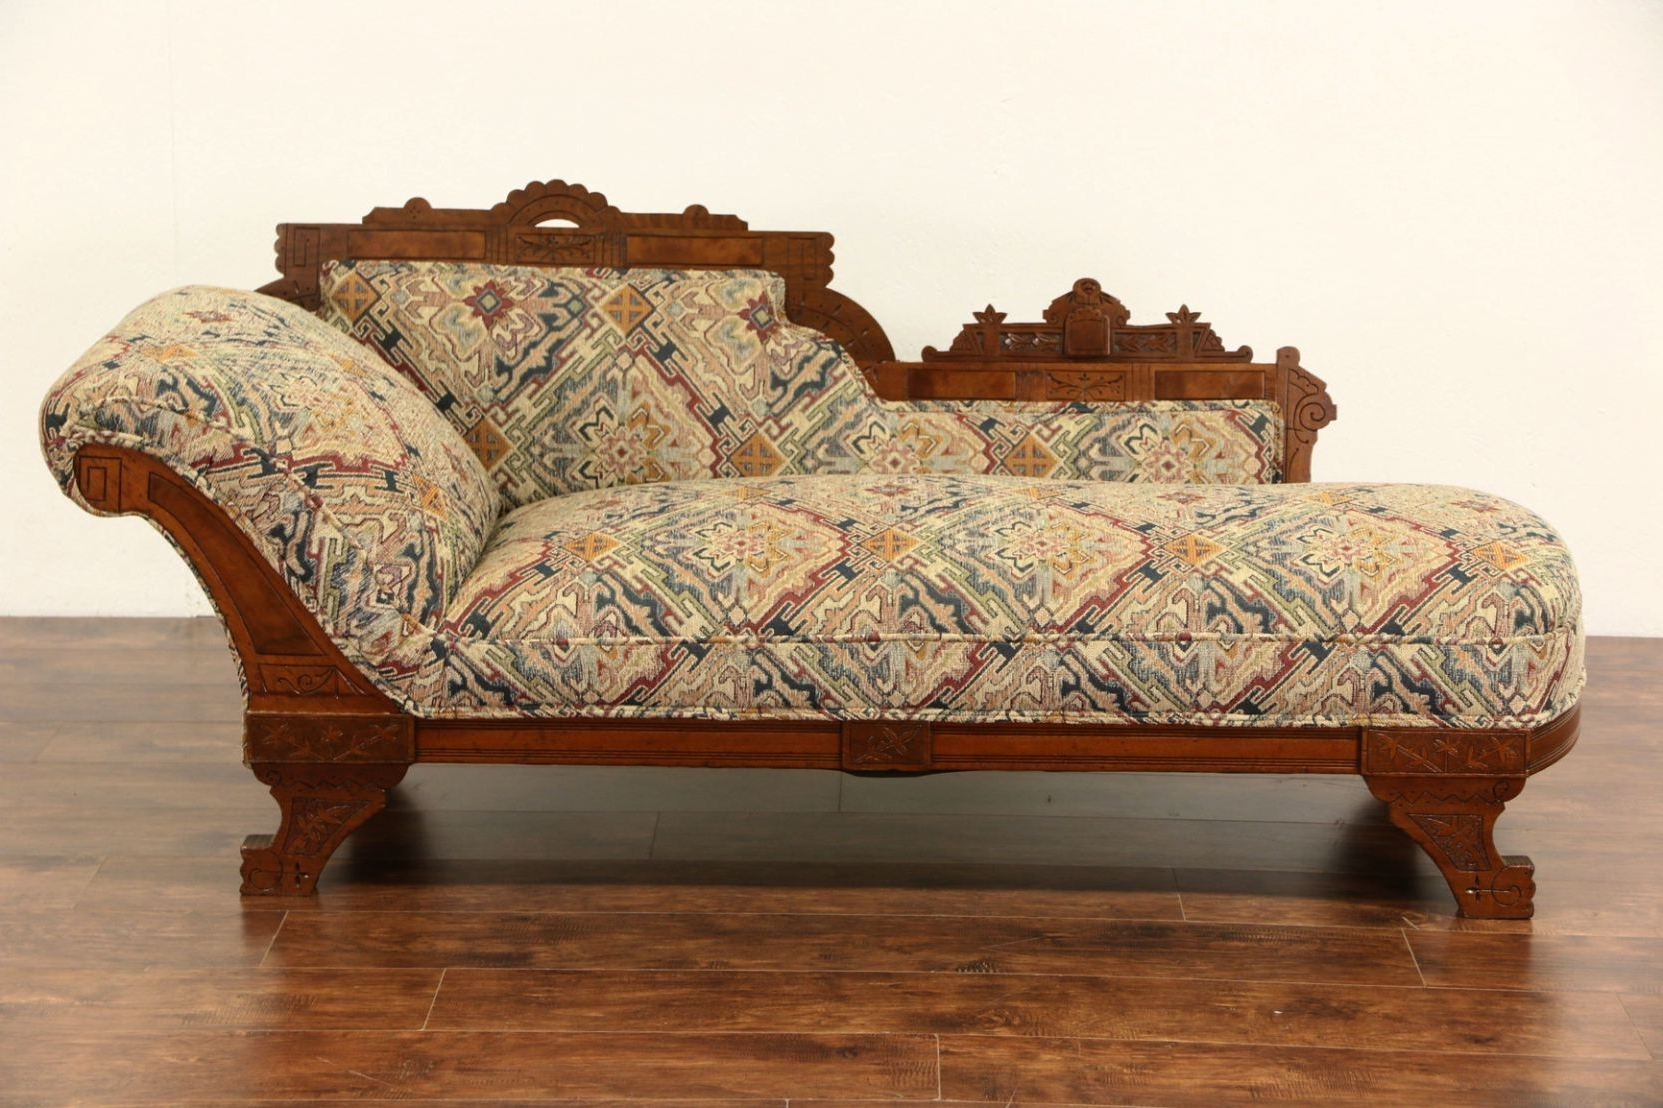 Victorian Eastlake 1880 Antique Chaise Lounge Or Fainting Couch Pertaining To Widely Used Victorian Chaise Lounges (View 14 of 15)